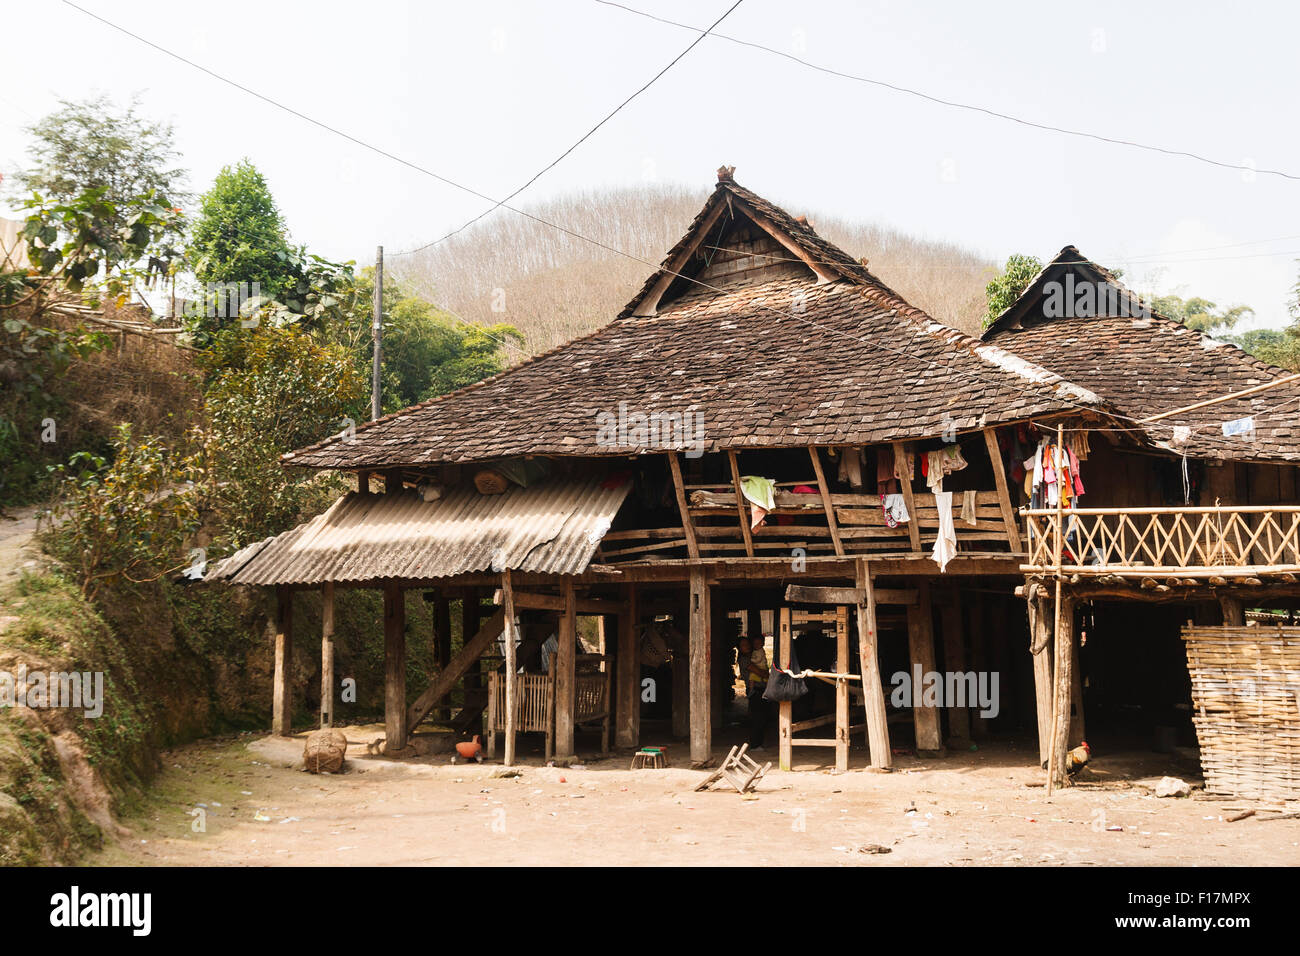 Traditional, rustic, wooden hut house in rural village in Xishuangbanna, Yunnan, China - Stock Image